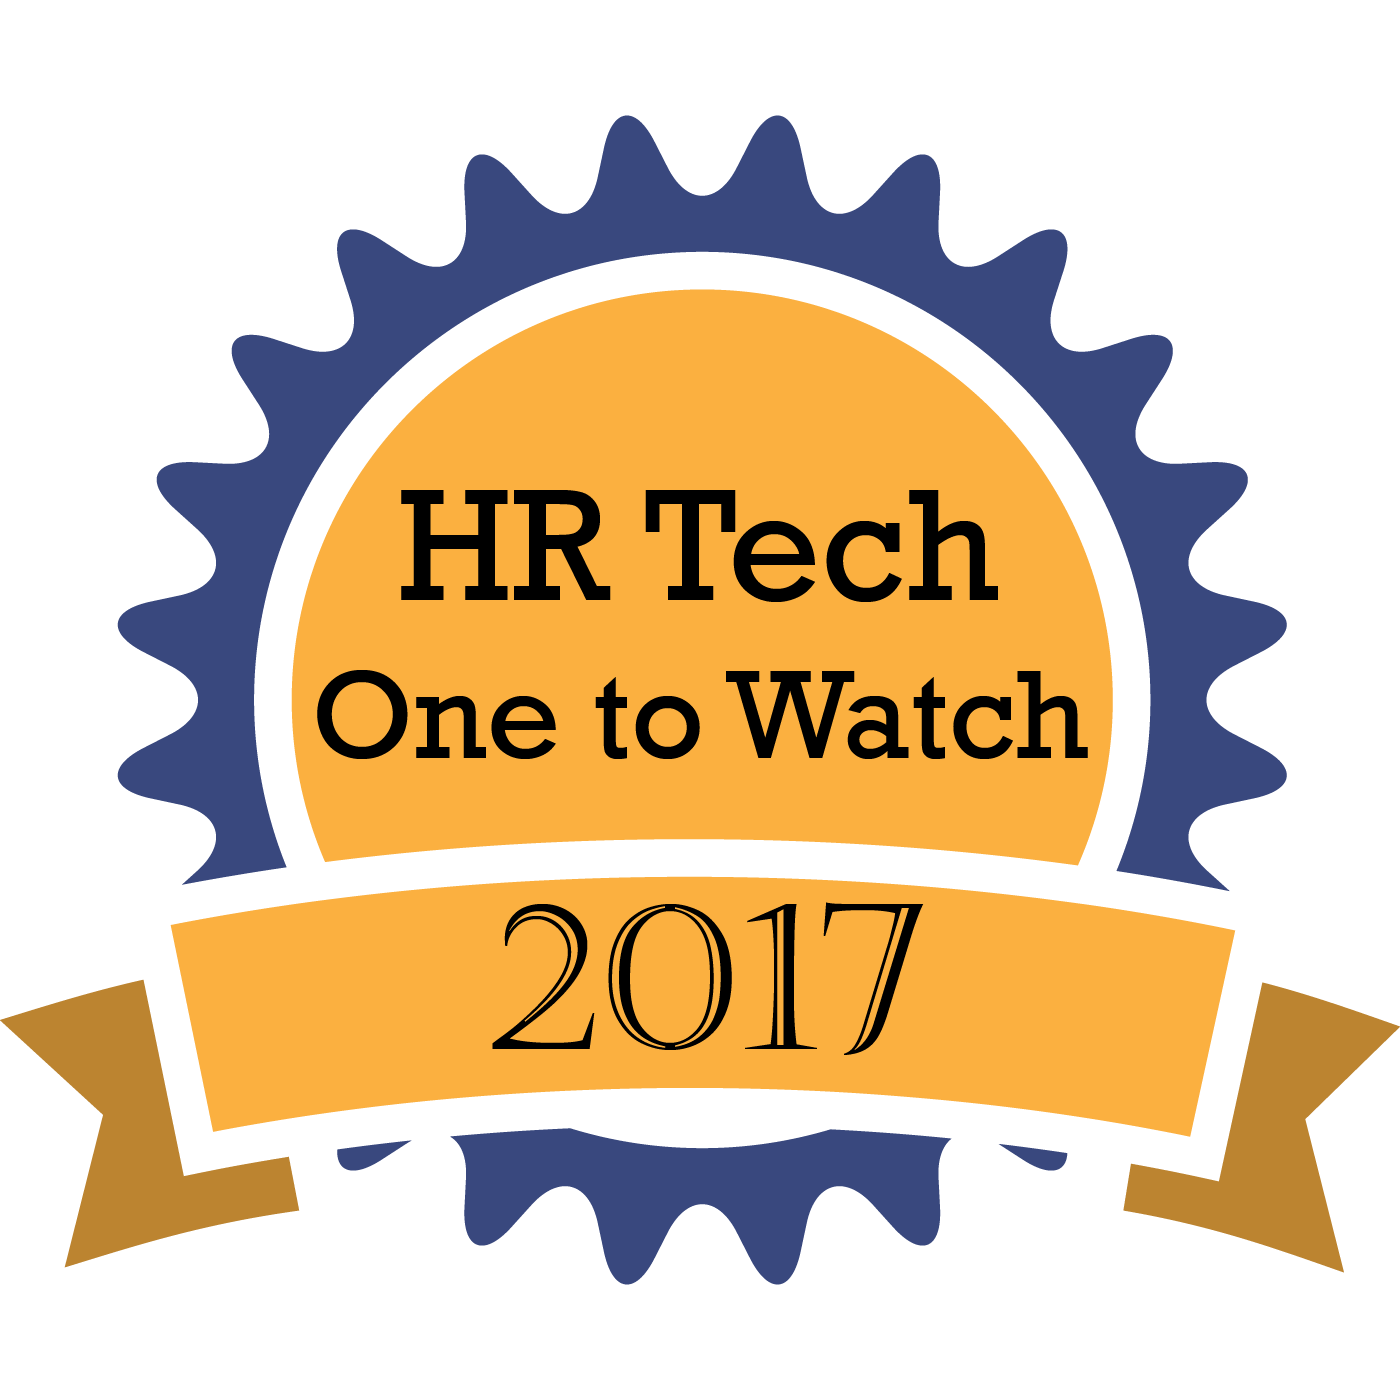 2017 EBN Human resources One to Watch Award